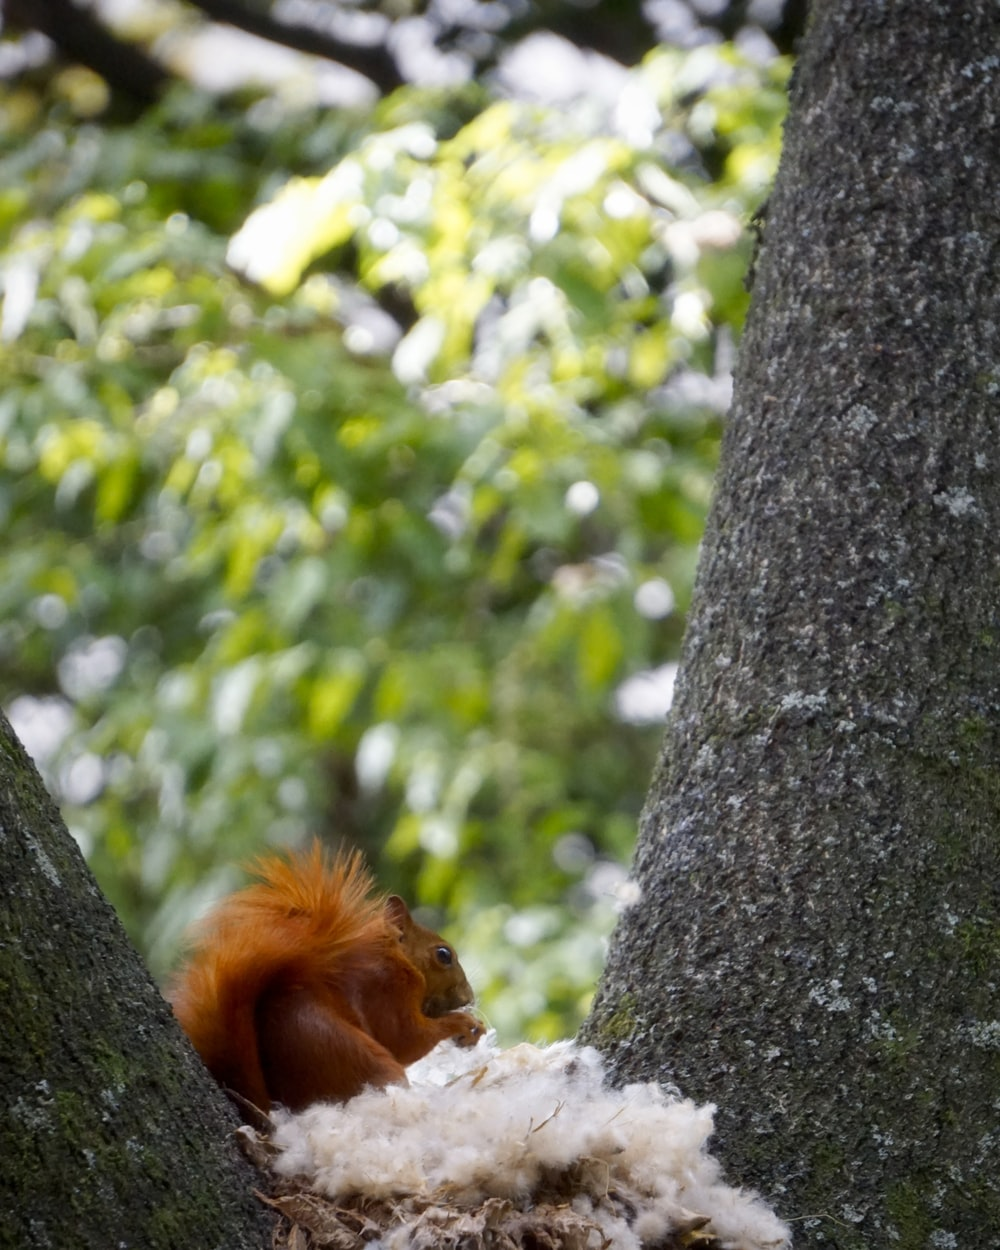 brown and white squirrel on tree trunk during daytime